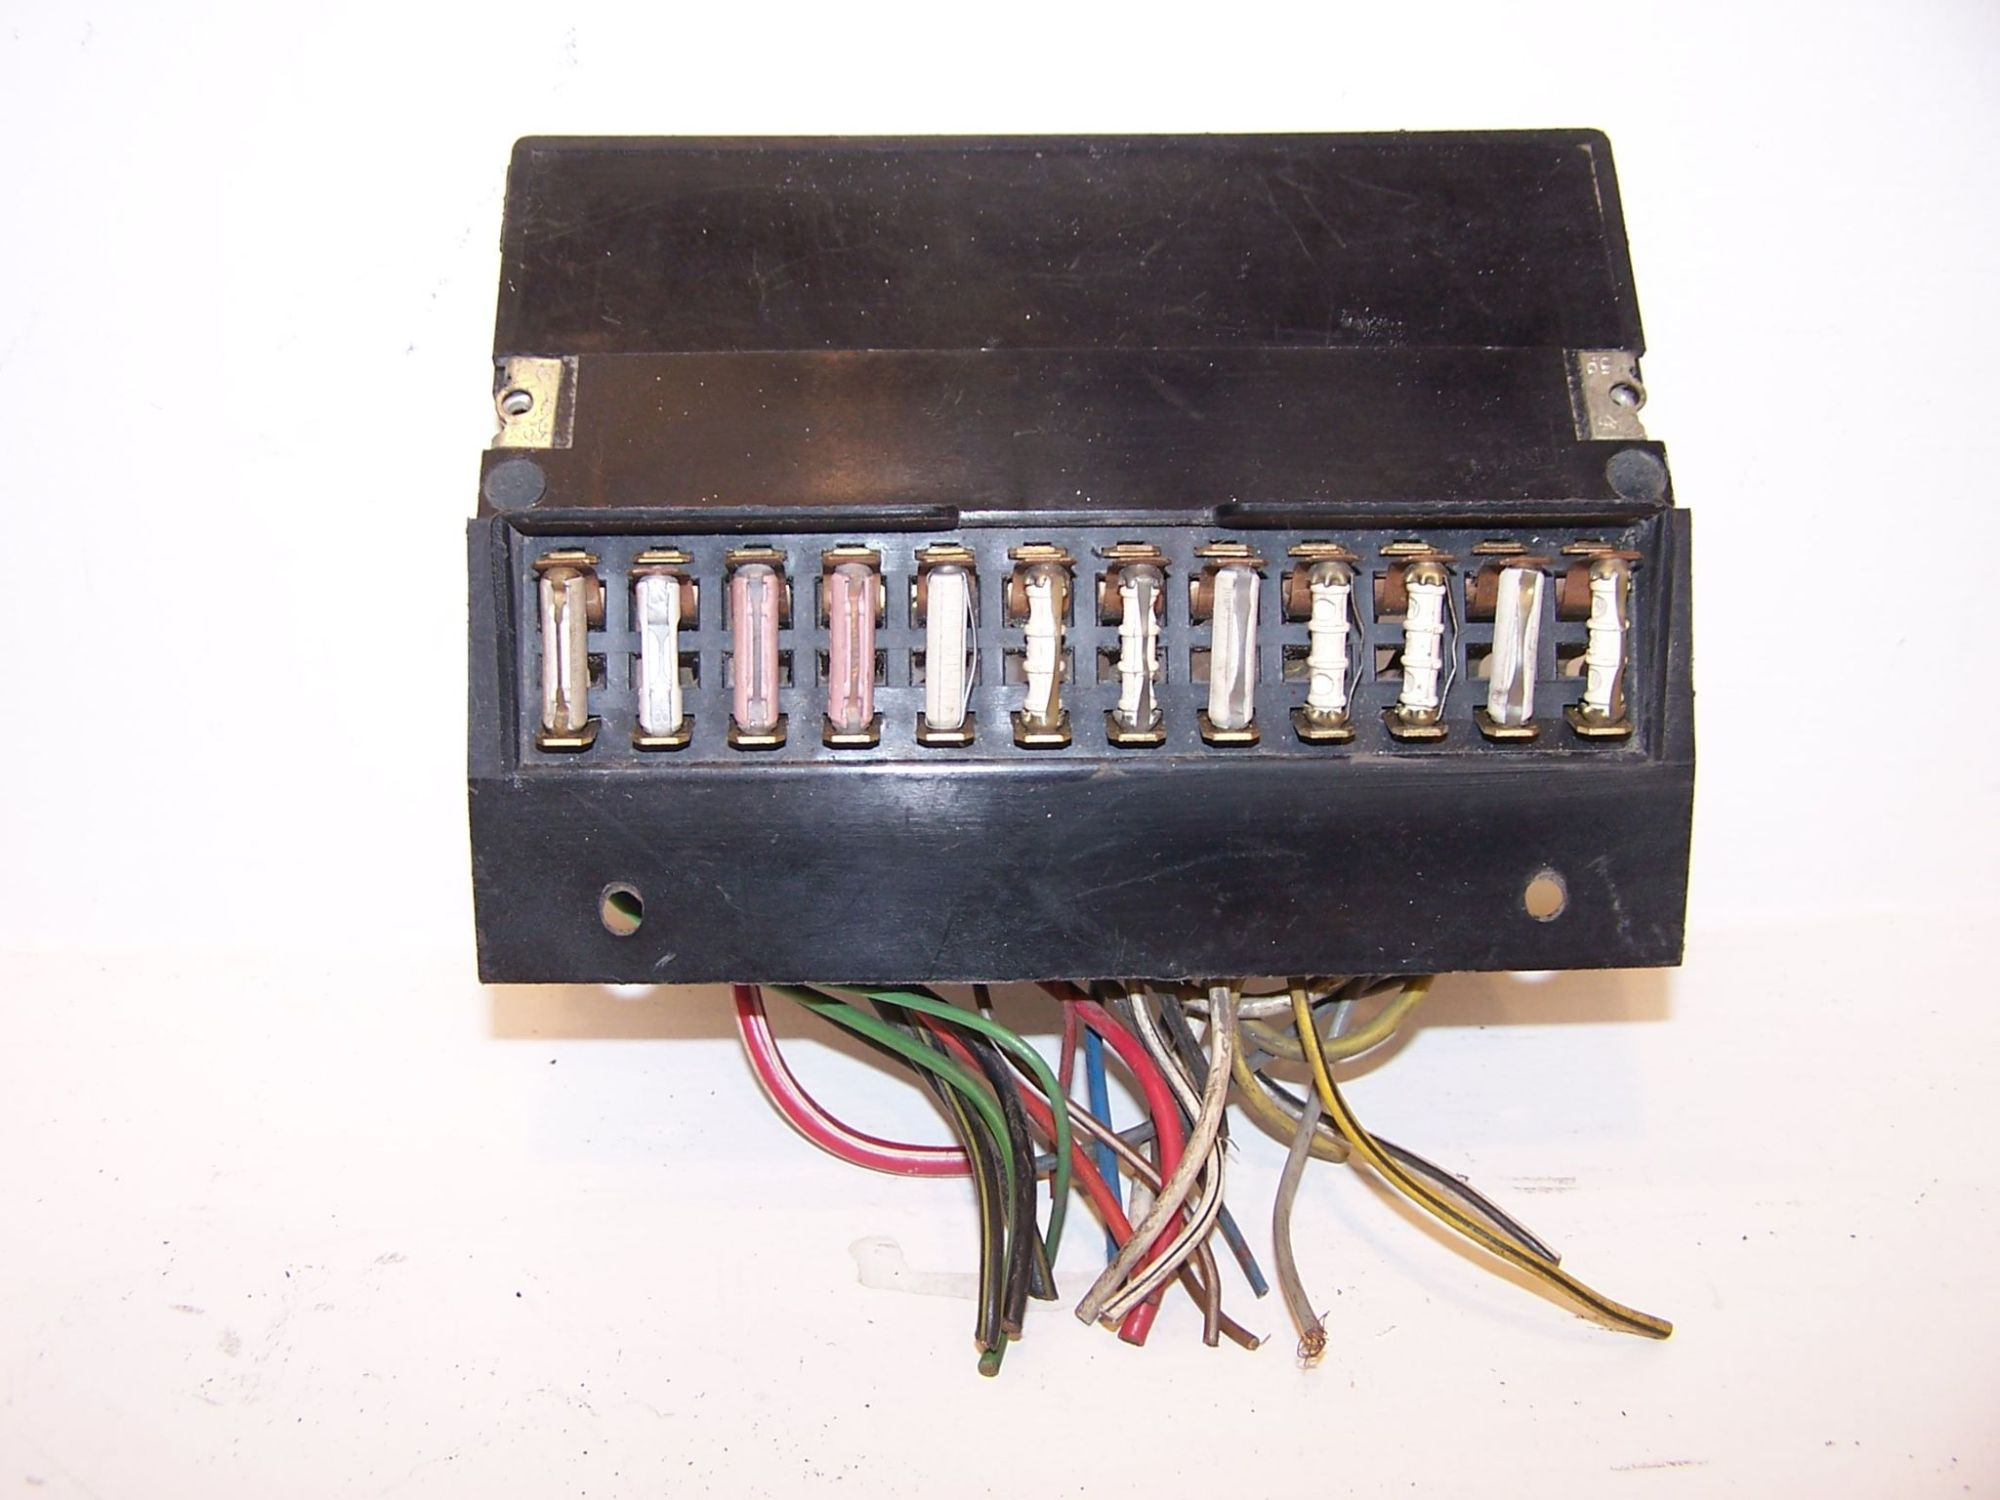 hight resolution of fuse box vw beetle 1303 type 2 1974 1979